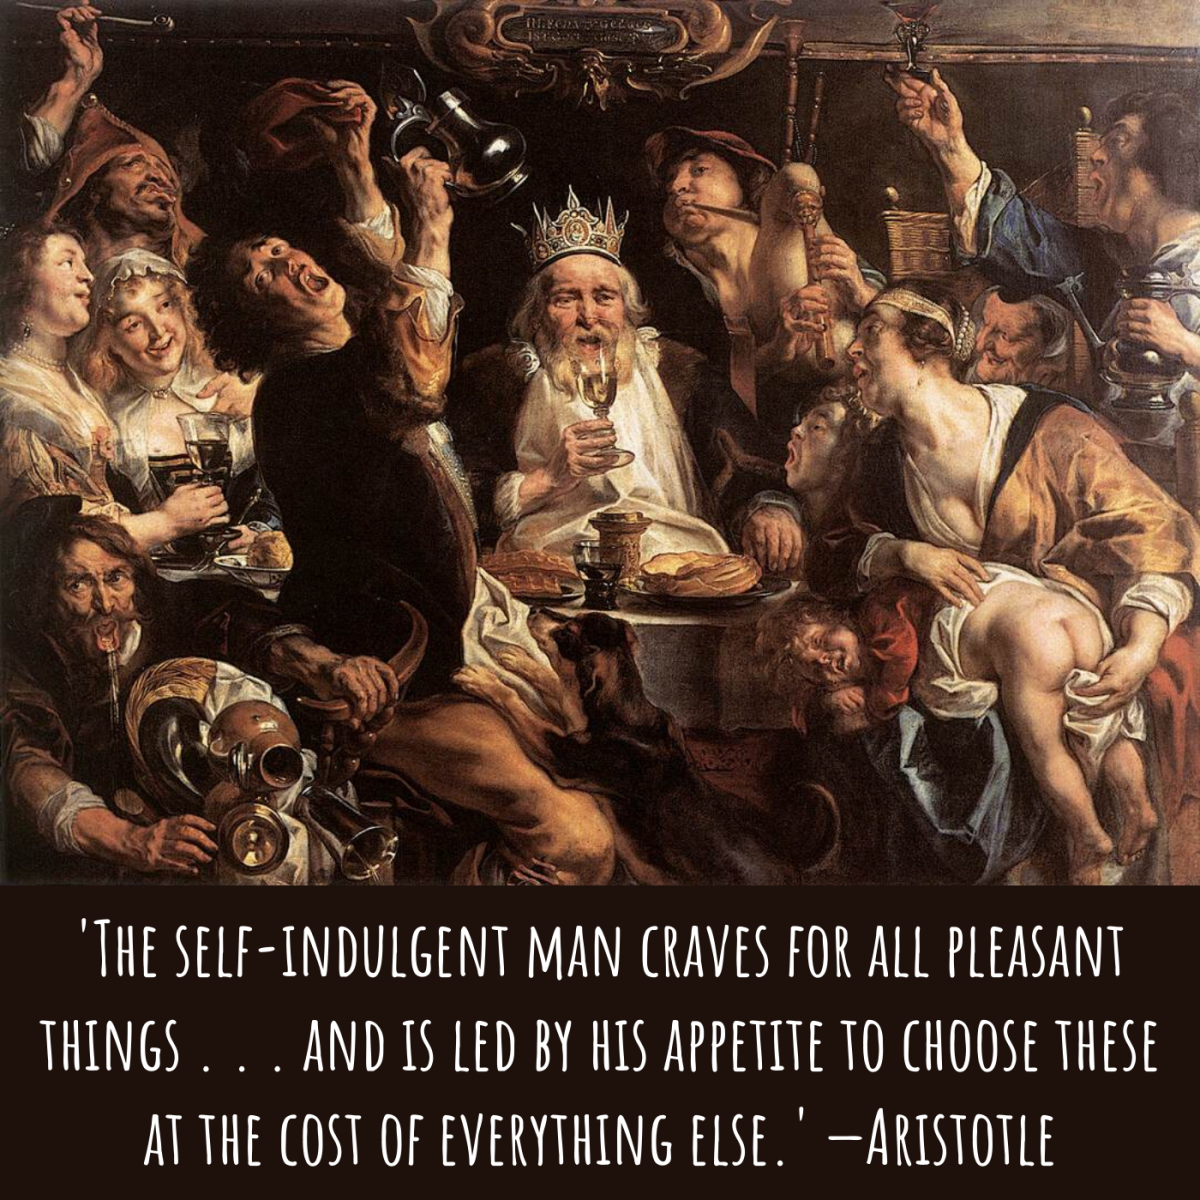 'The self-indulgent man craves for all pleasant things . . . and is led by his appetite to choose these at the cost of everything else.' —Aristotle